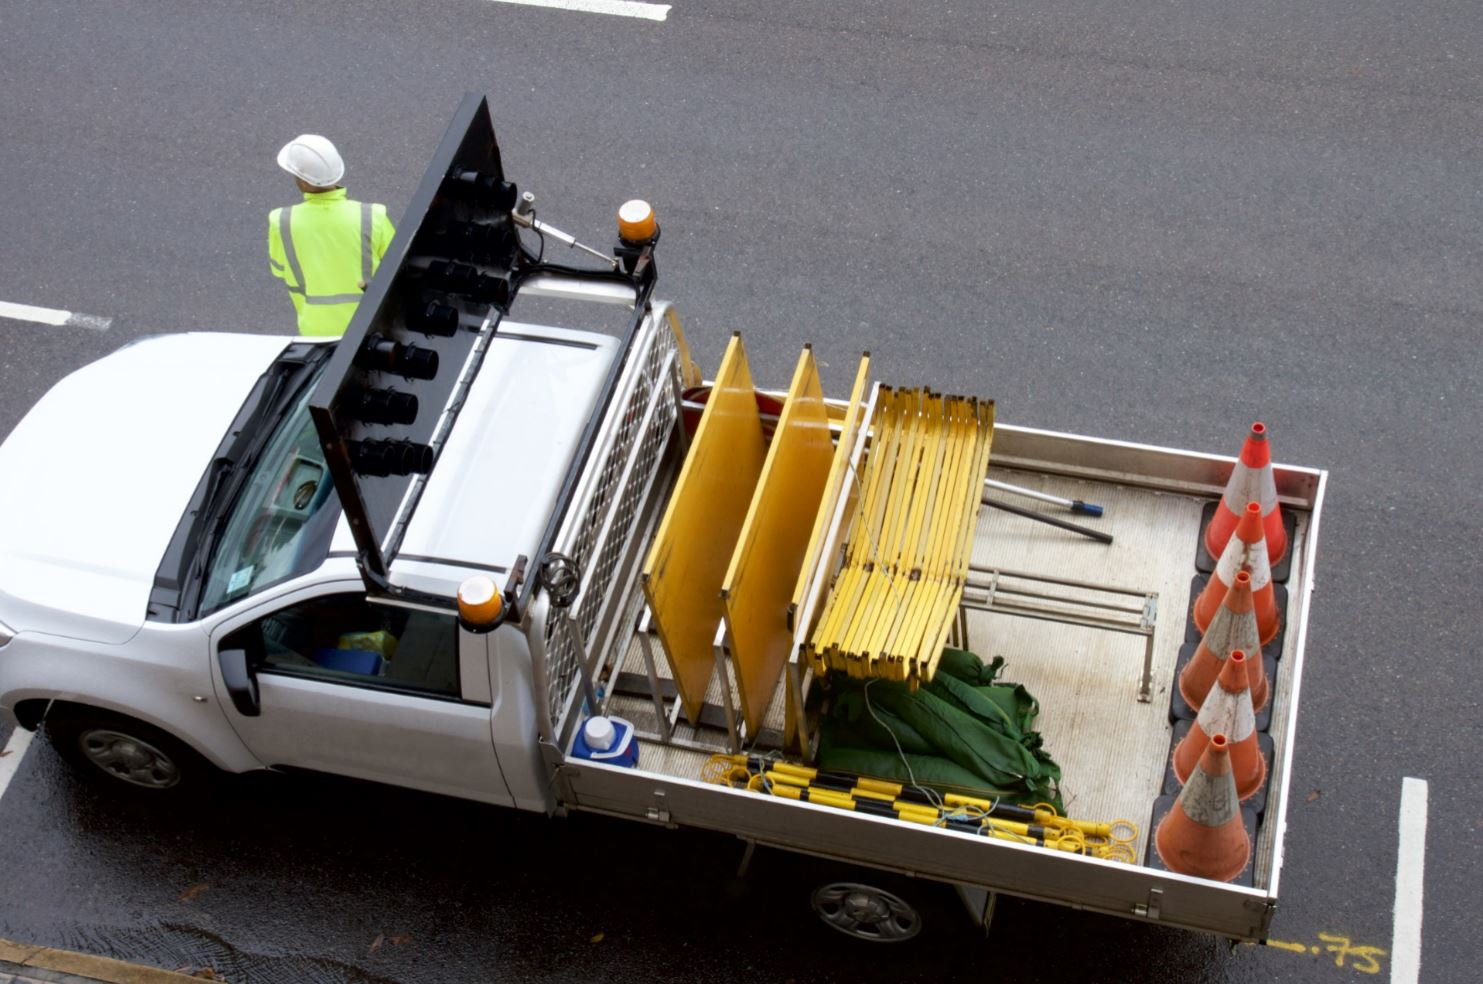 Arial view of a construction worker standing on the road next to the truck with traffic cones.